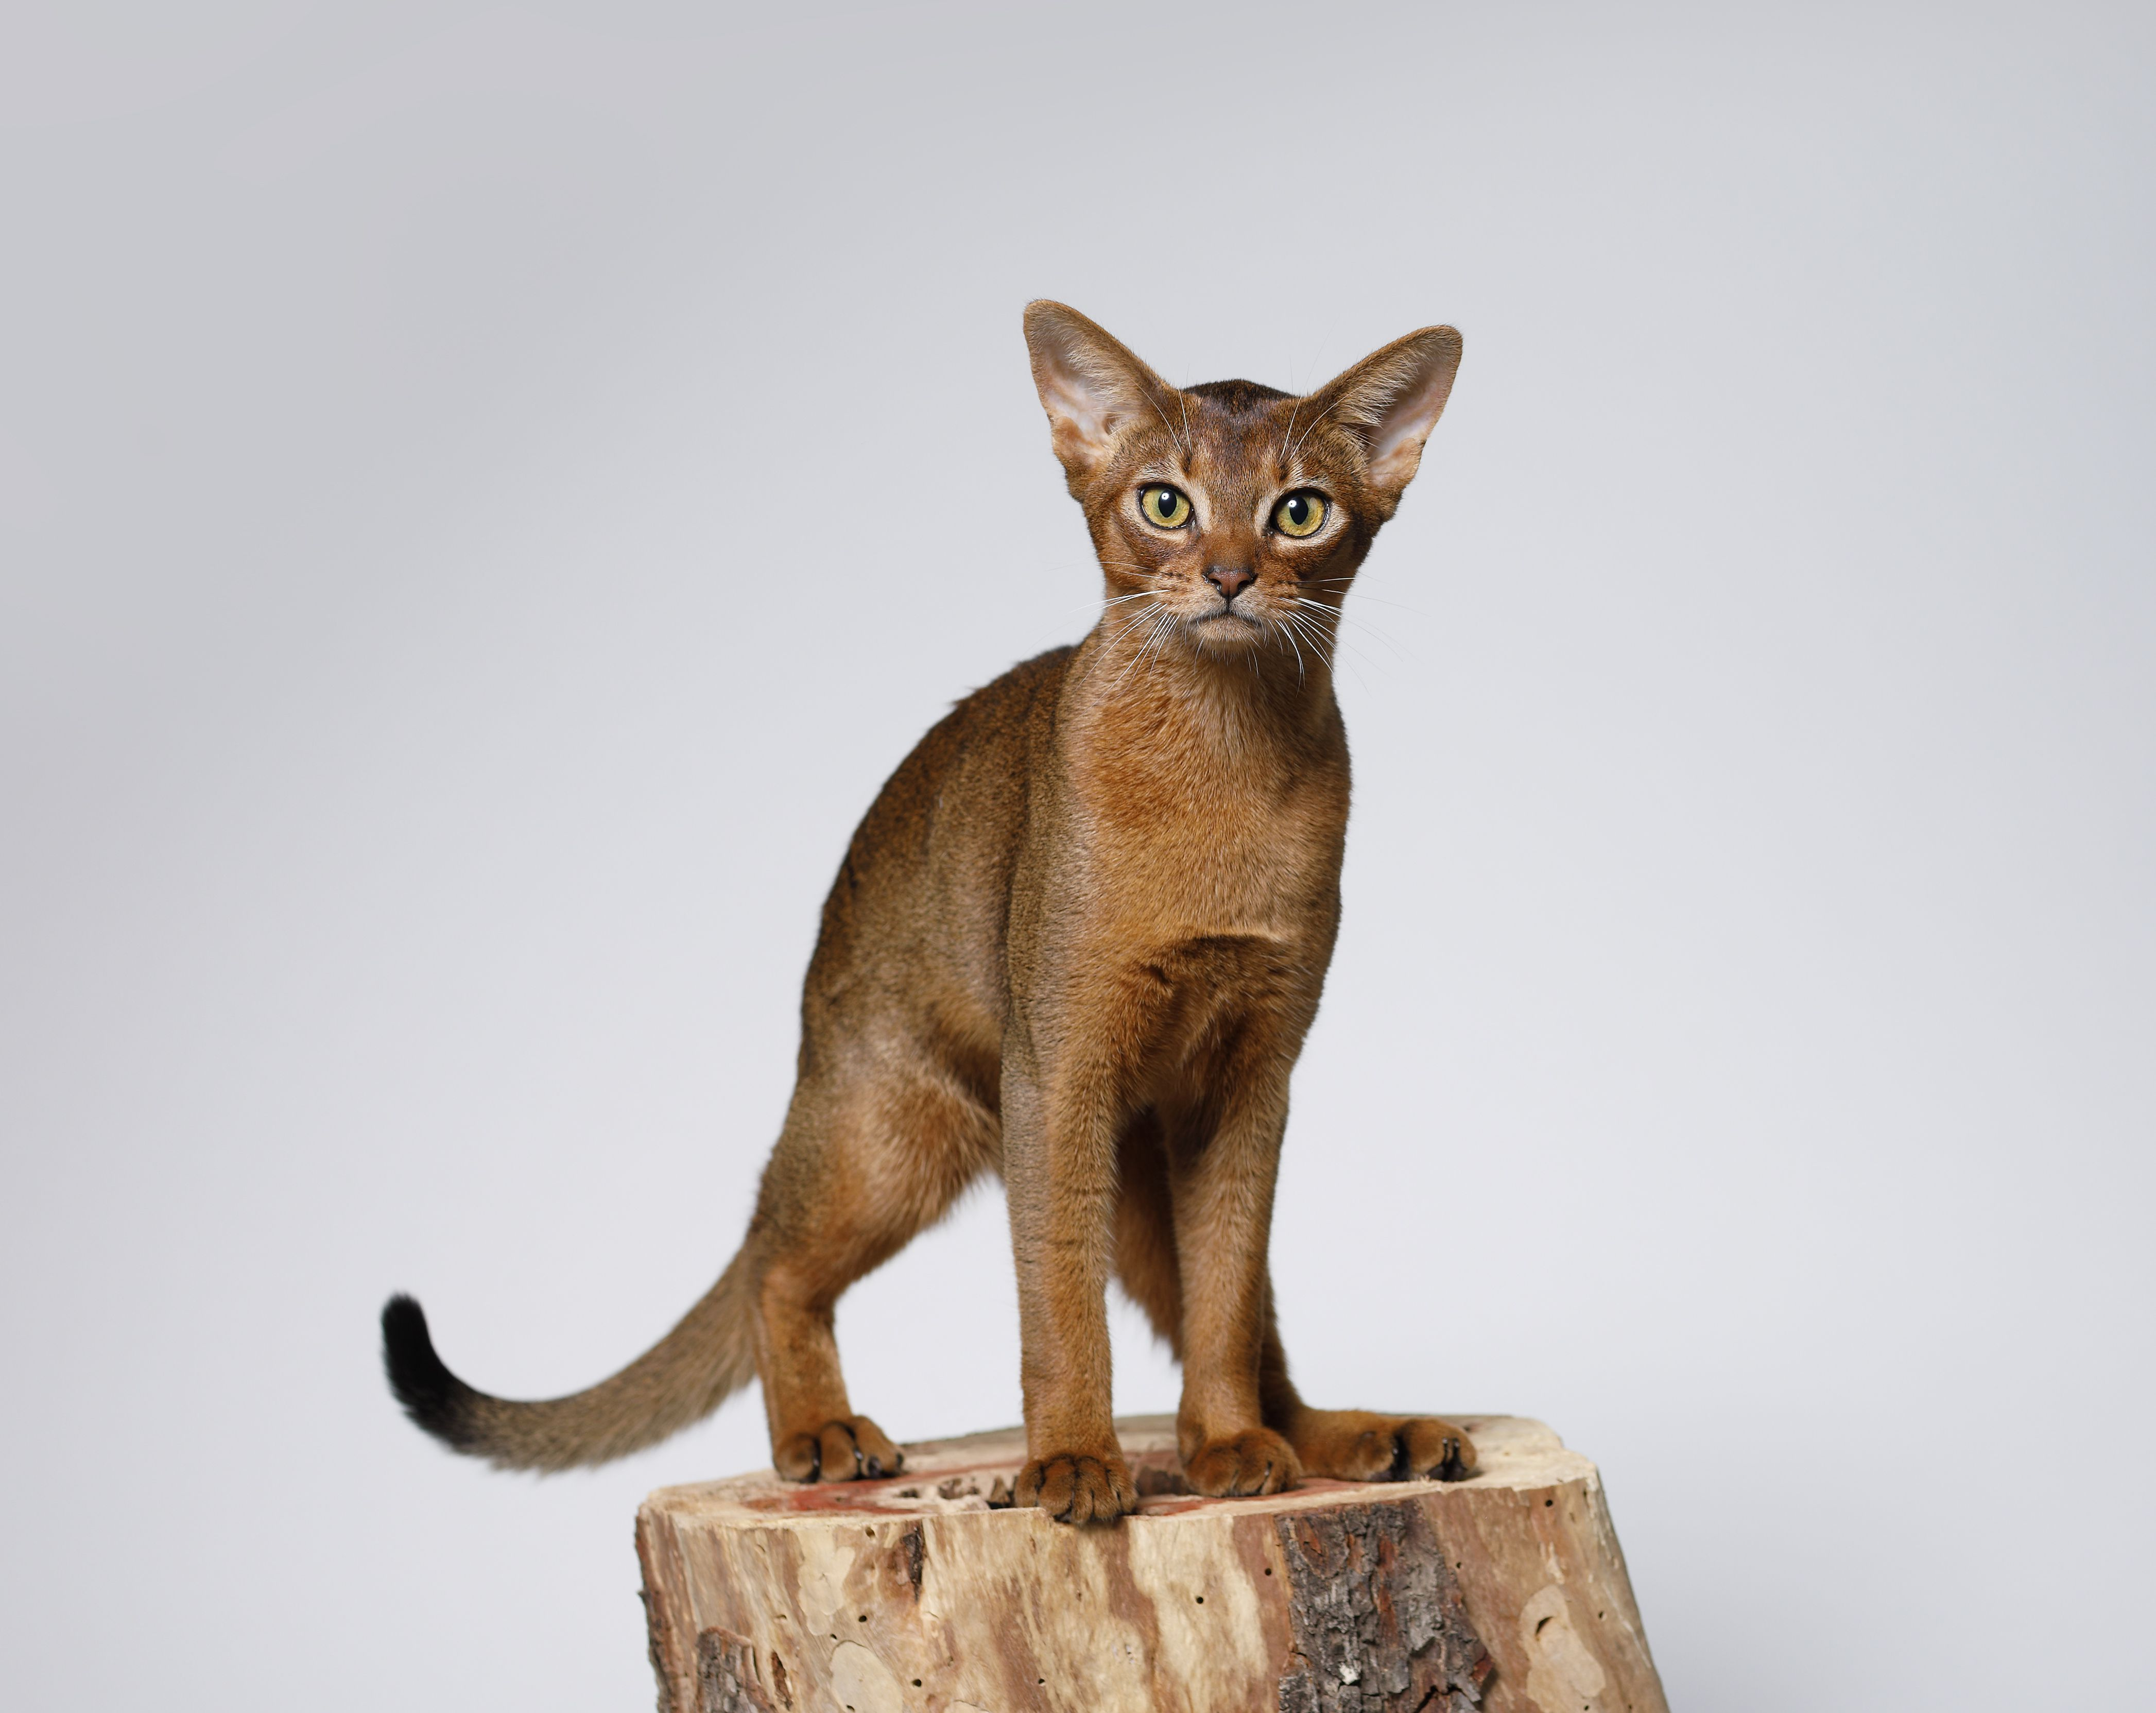 Beautiful Abyssinian Cat Standing on a tree stump